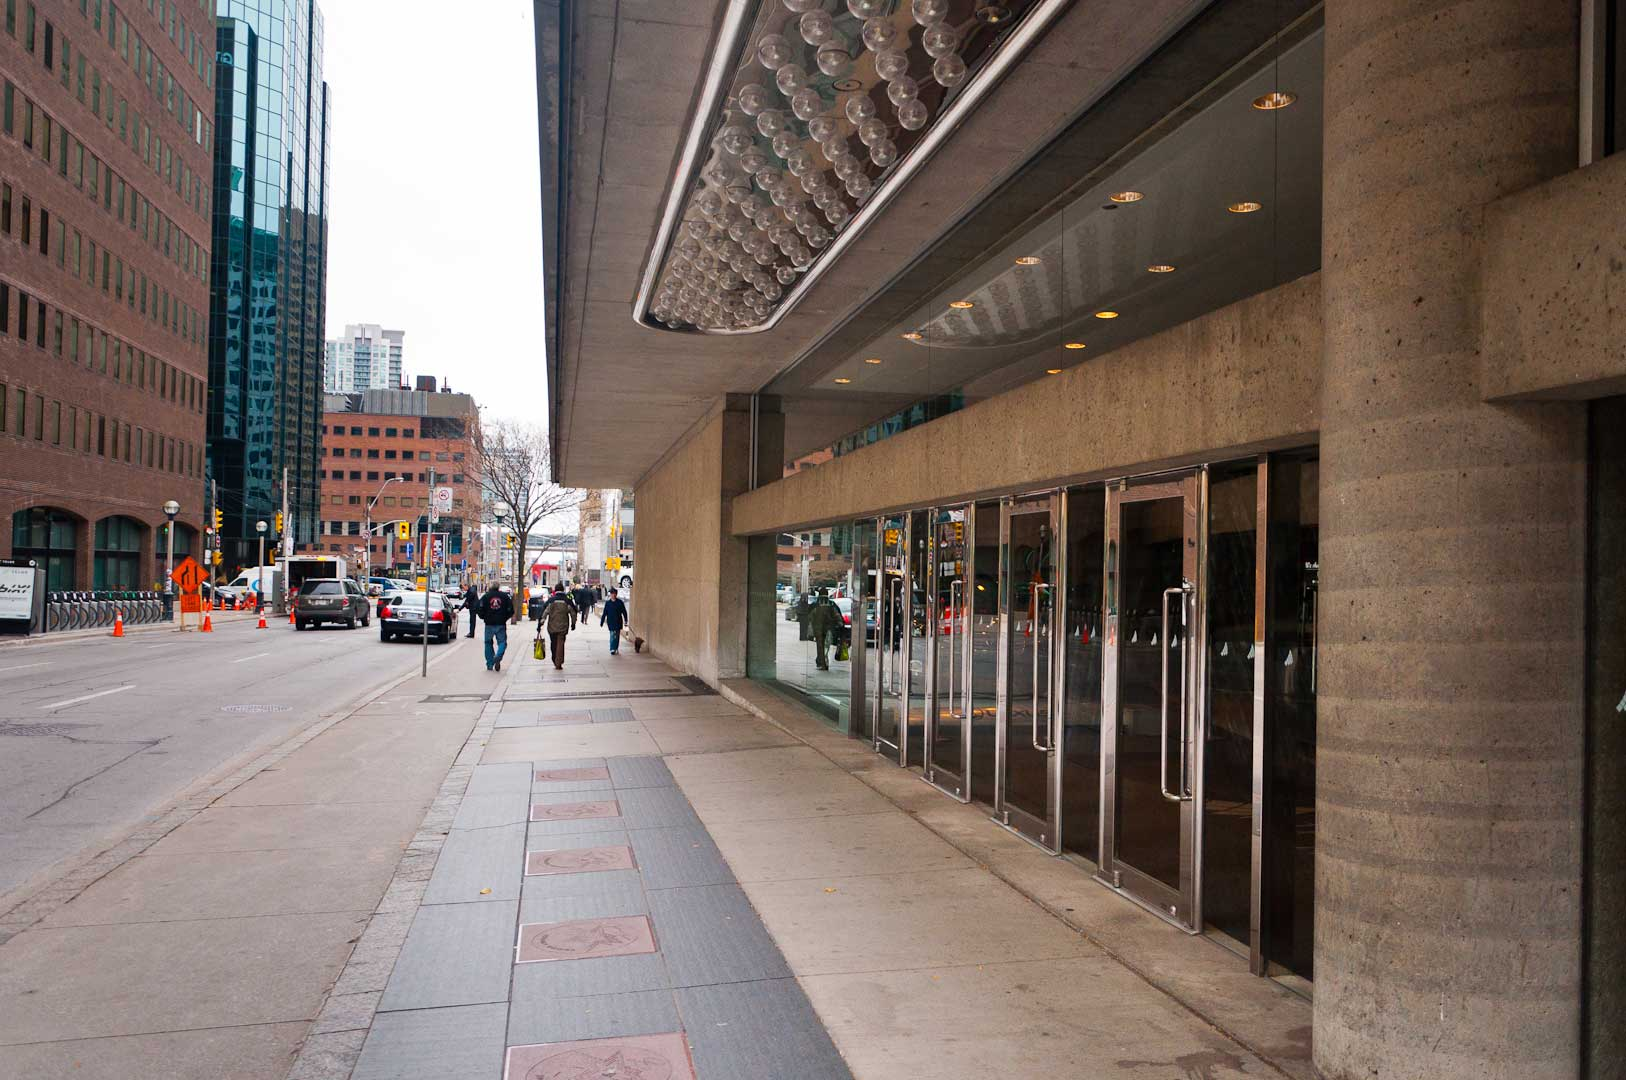 Day Time View of Theatre Entrance Doors Maintained by Explore1.ca Stainless Steel and Glass Doors